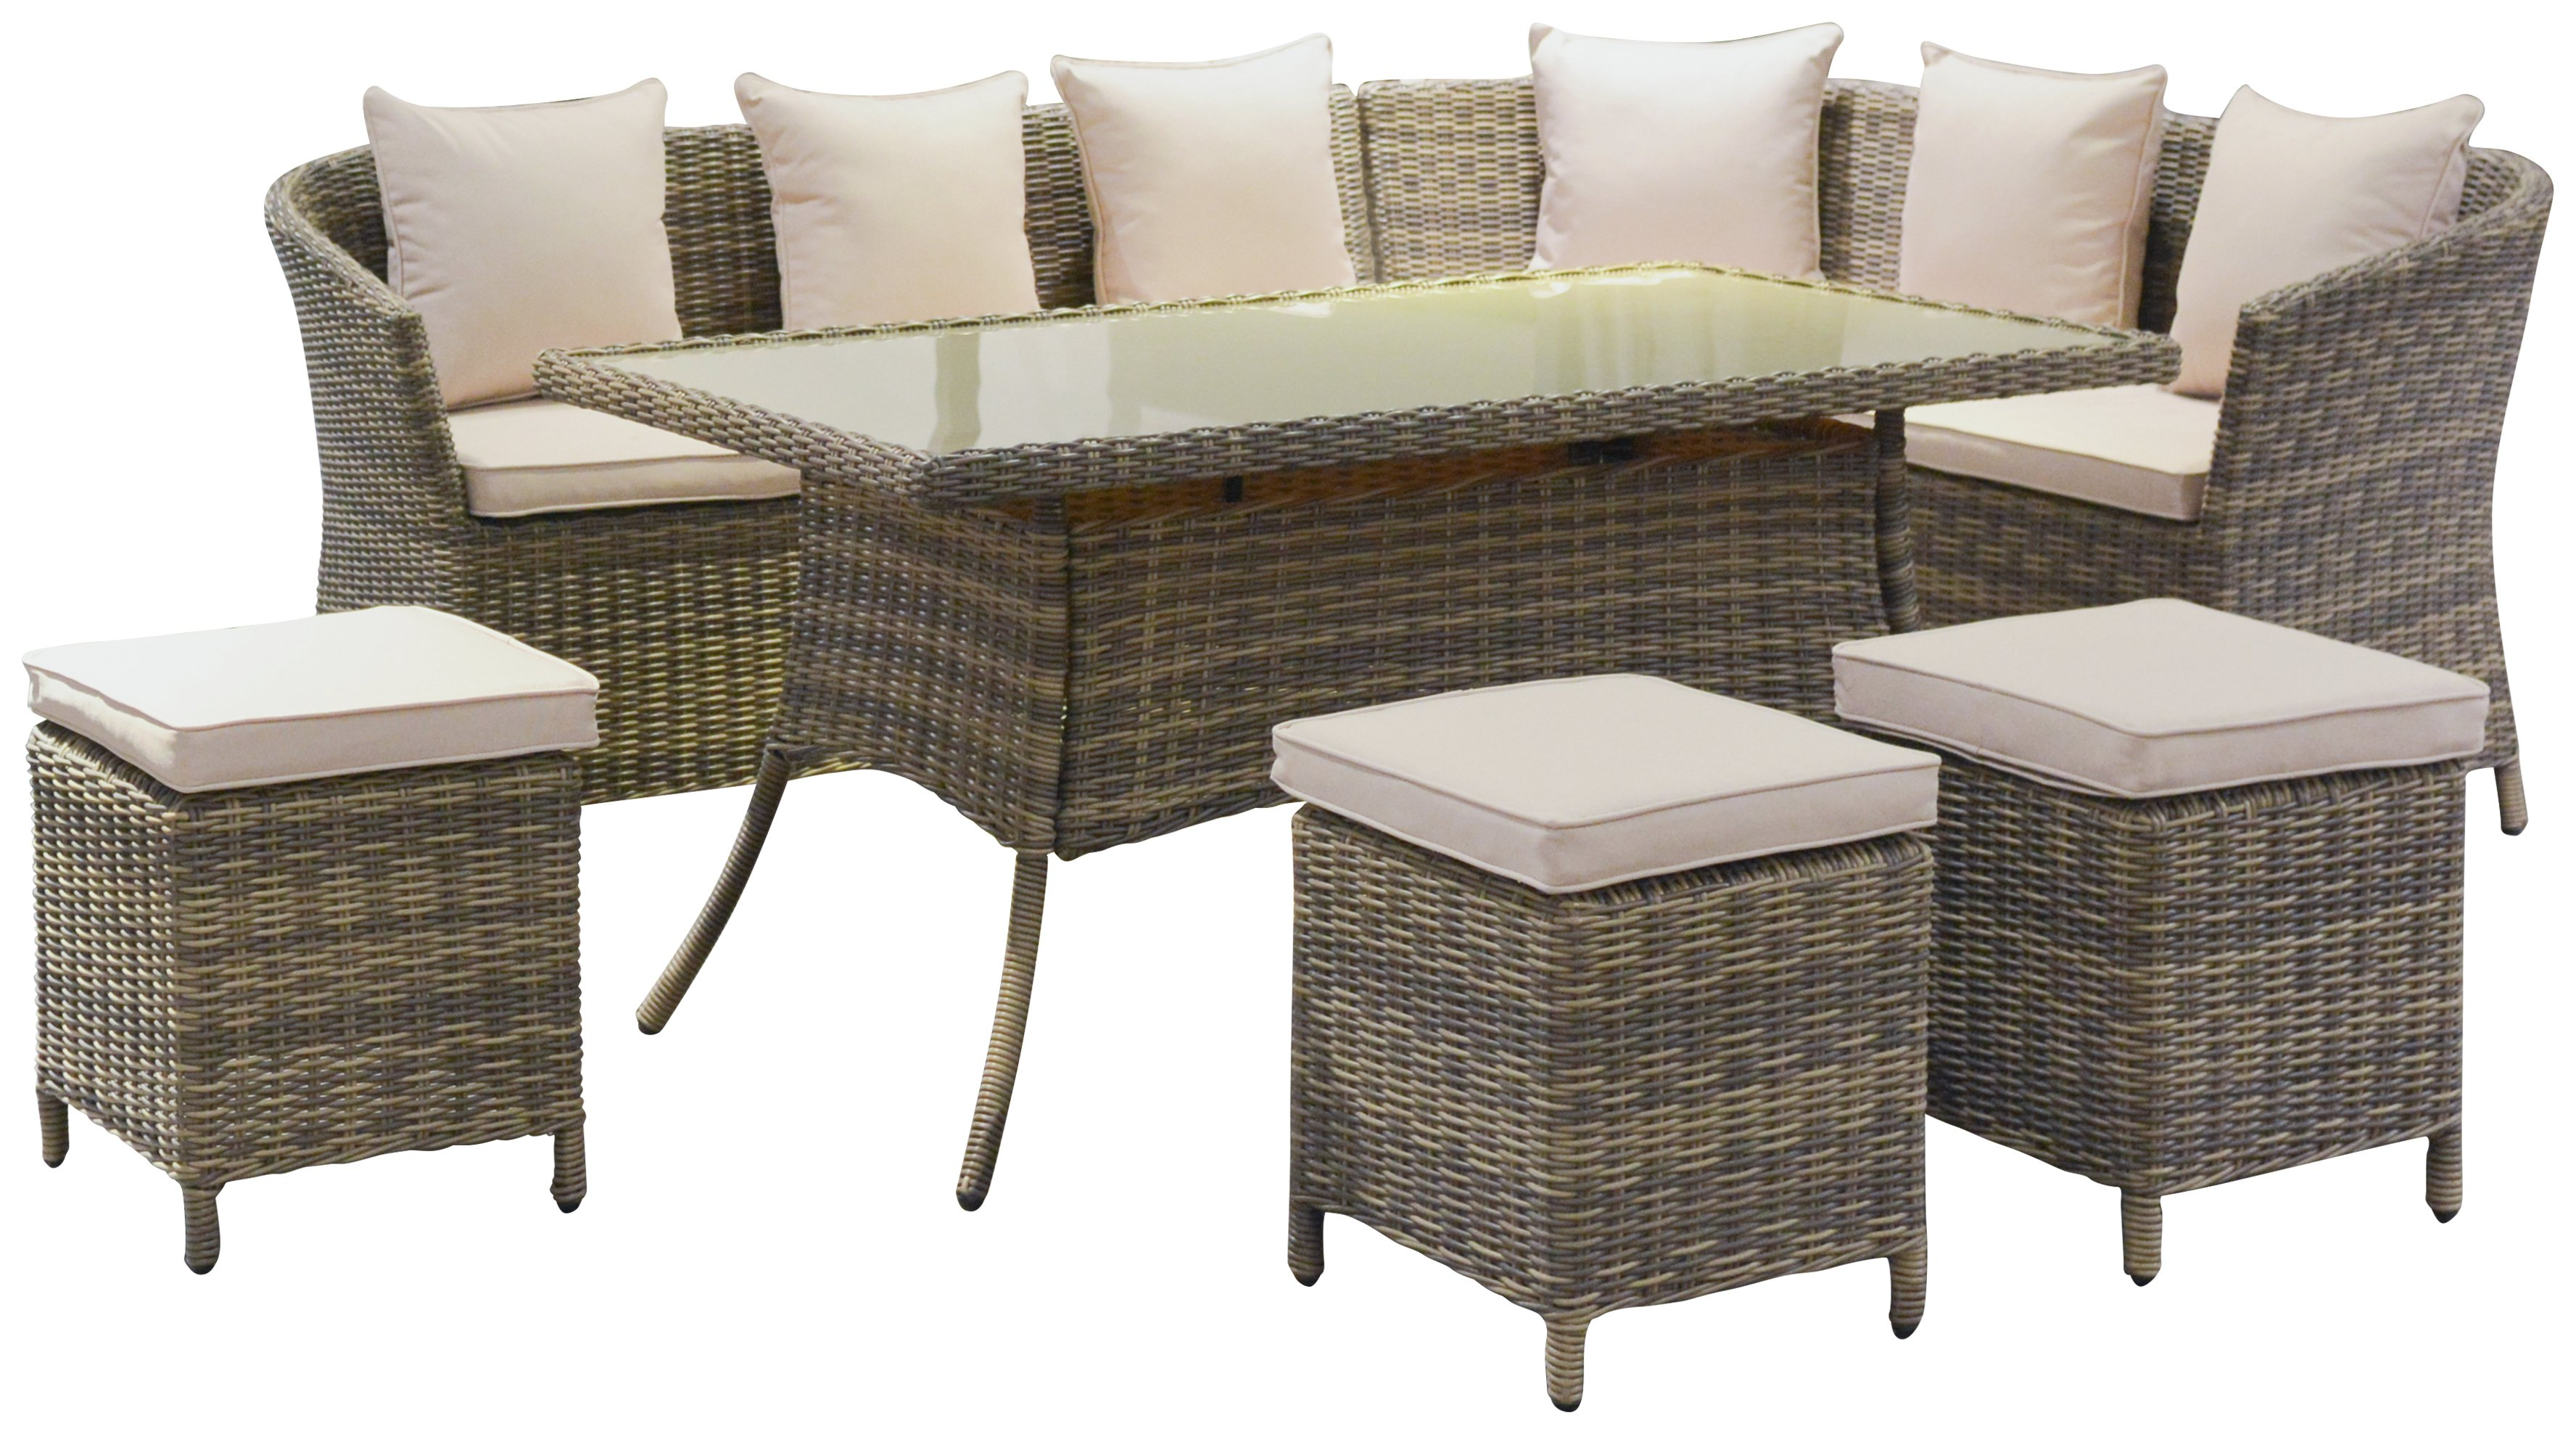 Buy Rattan Effect 8 Seater Corner Sofa Dining Table and Stools at